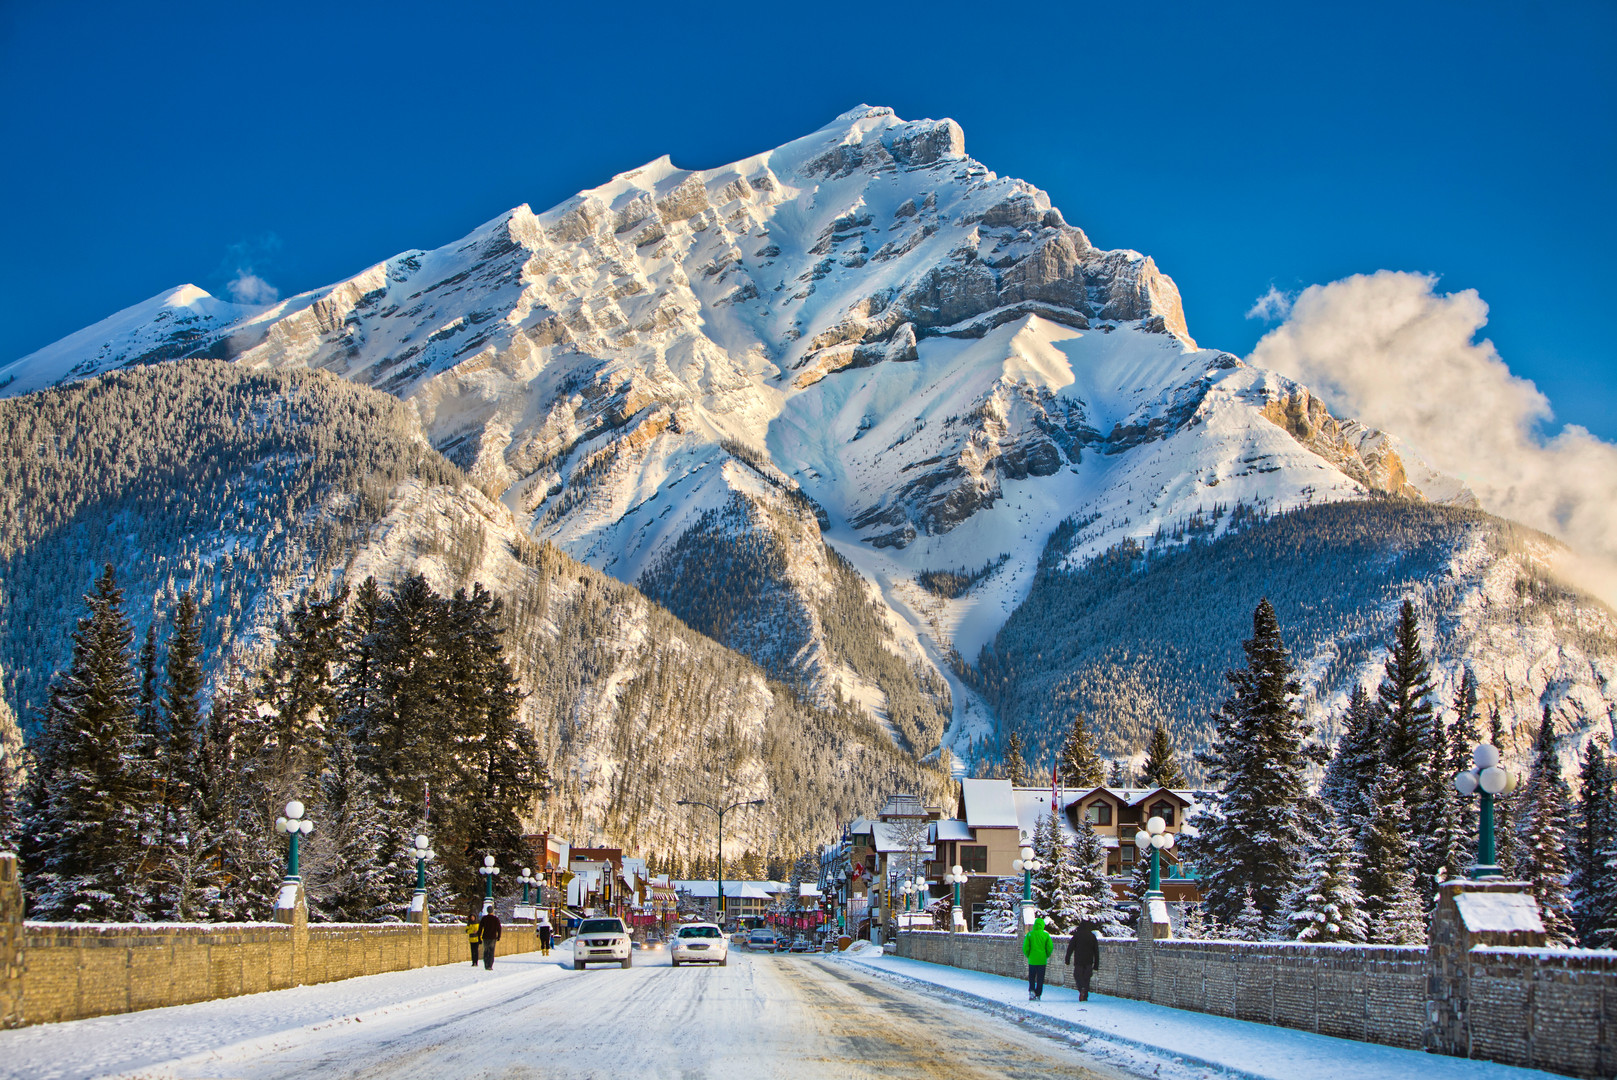 Destination_Signature_Banff_Avenue_Winte